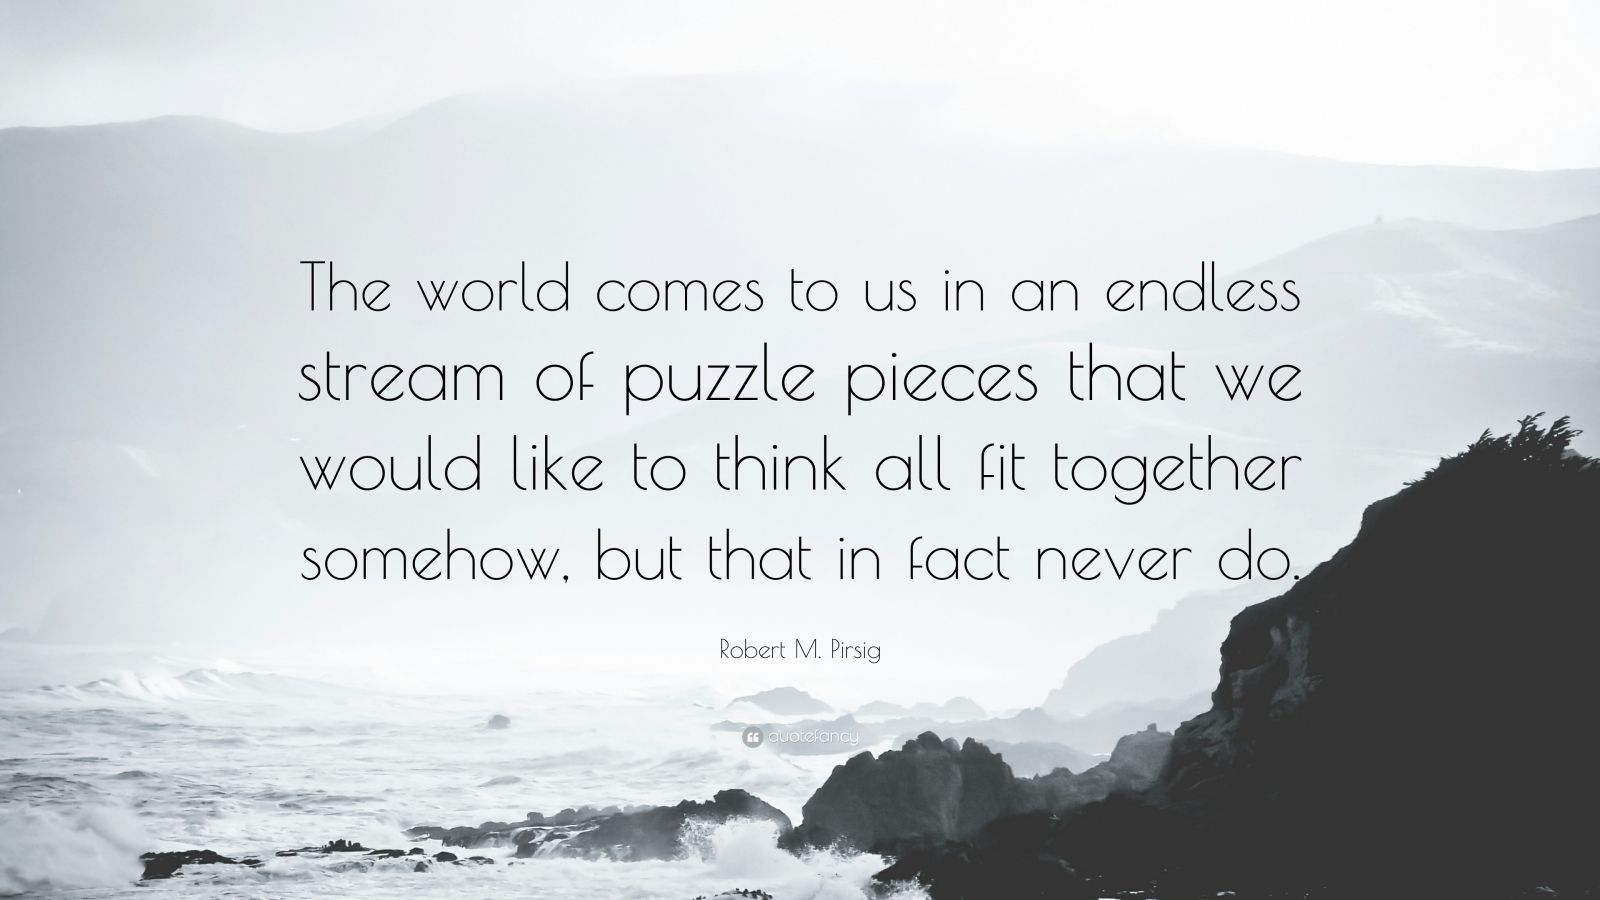 """Robert M. Pirsig Quote: """"The world comes to us in an endless stream of puzzle pieces that we would like to think all fit together somehow, but that in fact never do."""""""